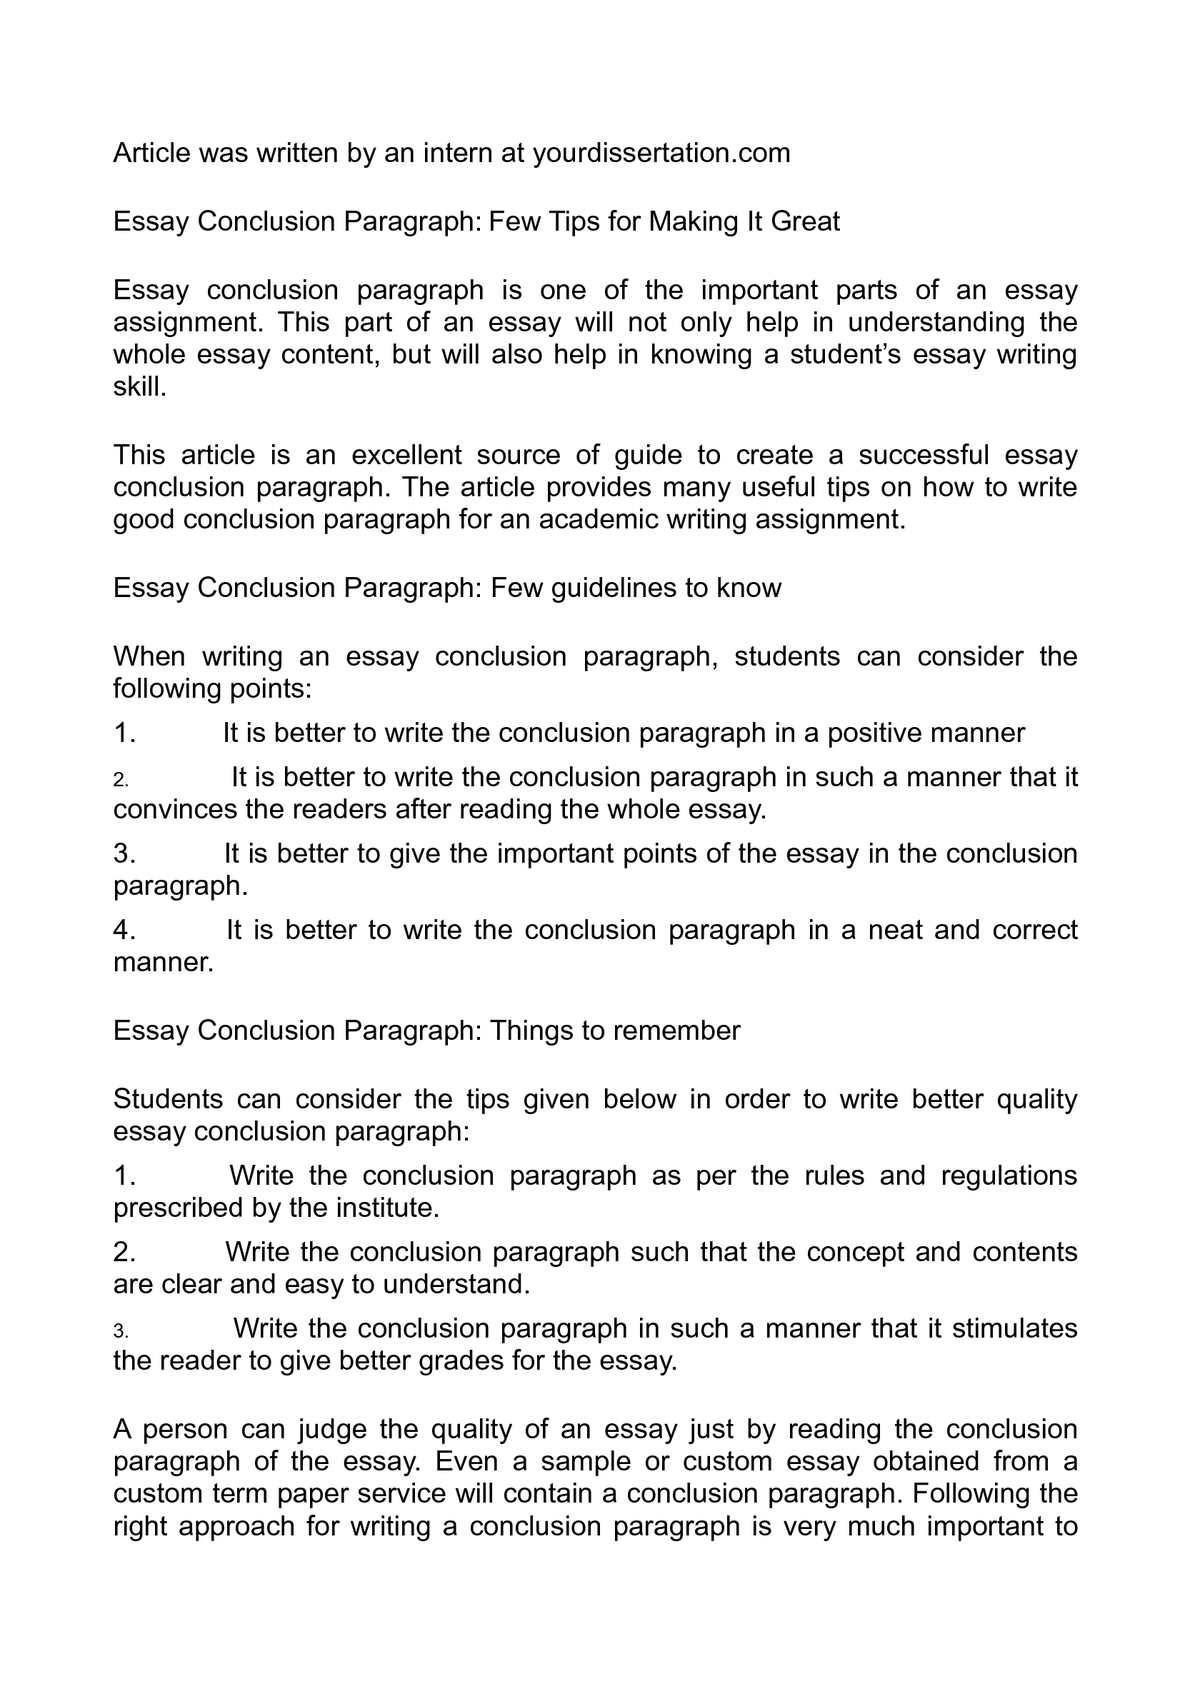 strategies concluding essays Home / writing resources / strategies for essay writing / ending the essay: conclusions this is, after all, your last chance to persuade your readers to your point of view, to impress yourself upon them as a writer and thinker.